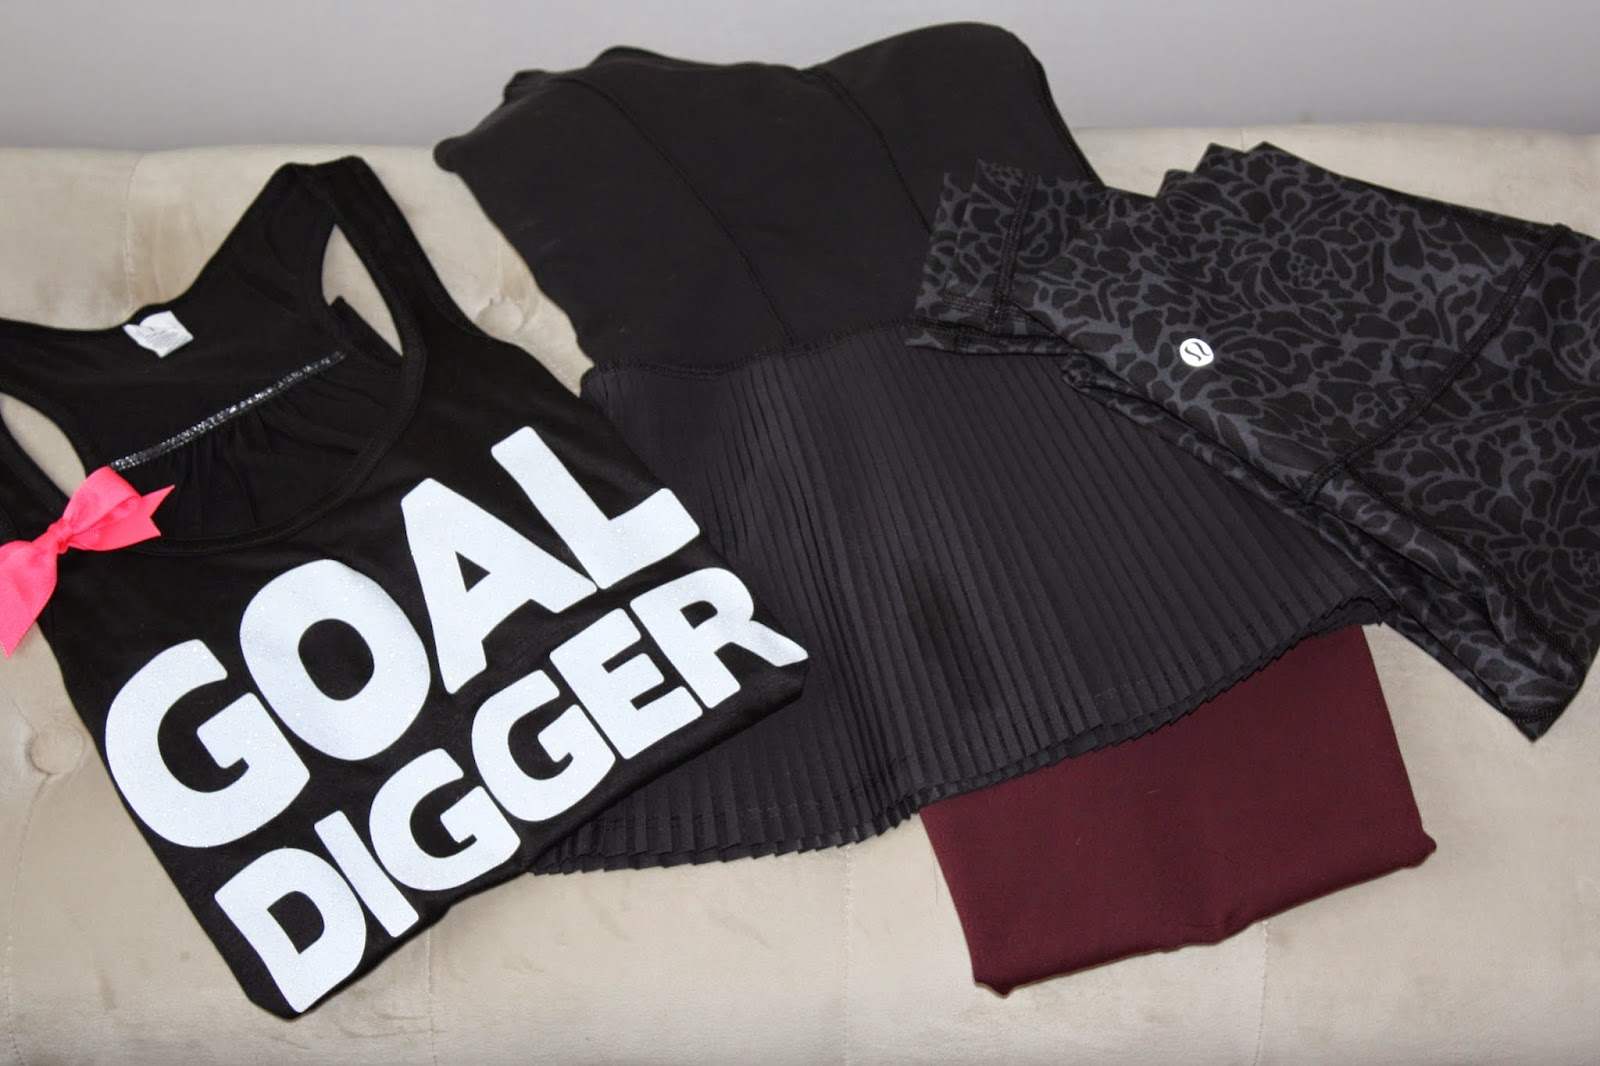 Goal Digger Workout Tank and Lululemon Tanks and Leggings